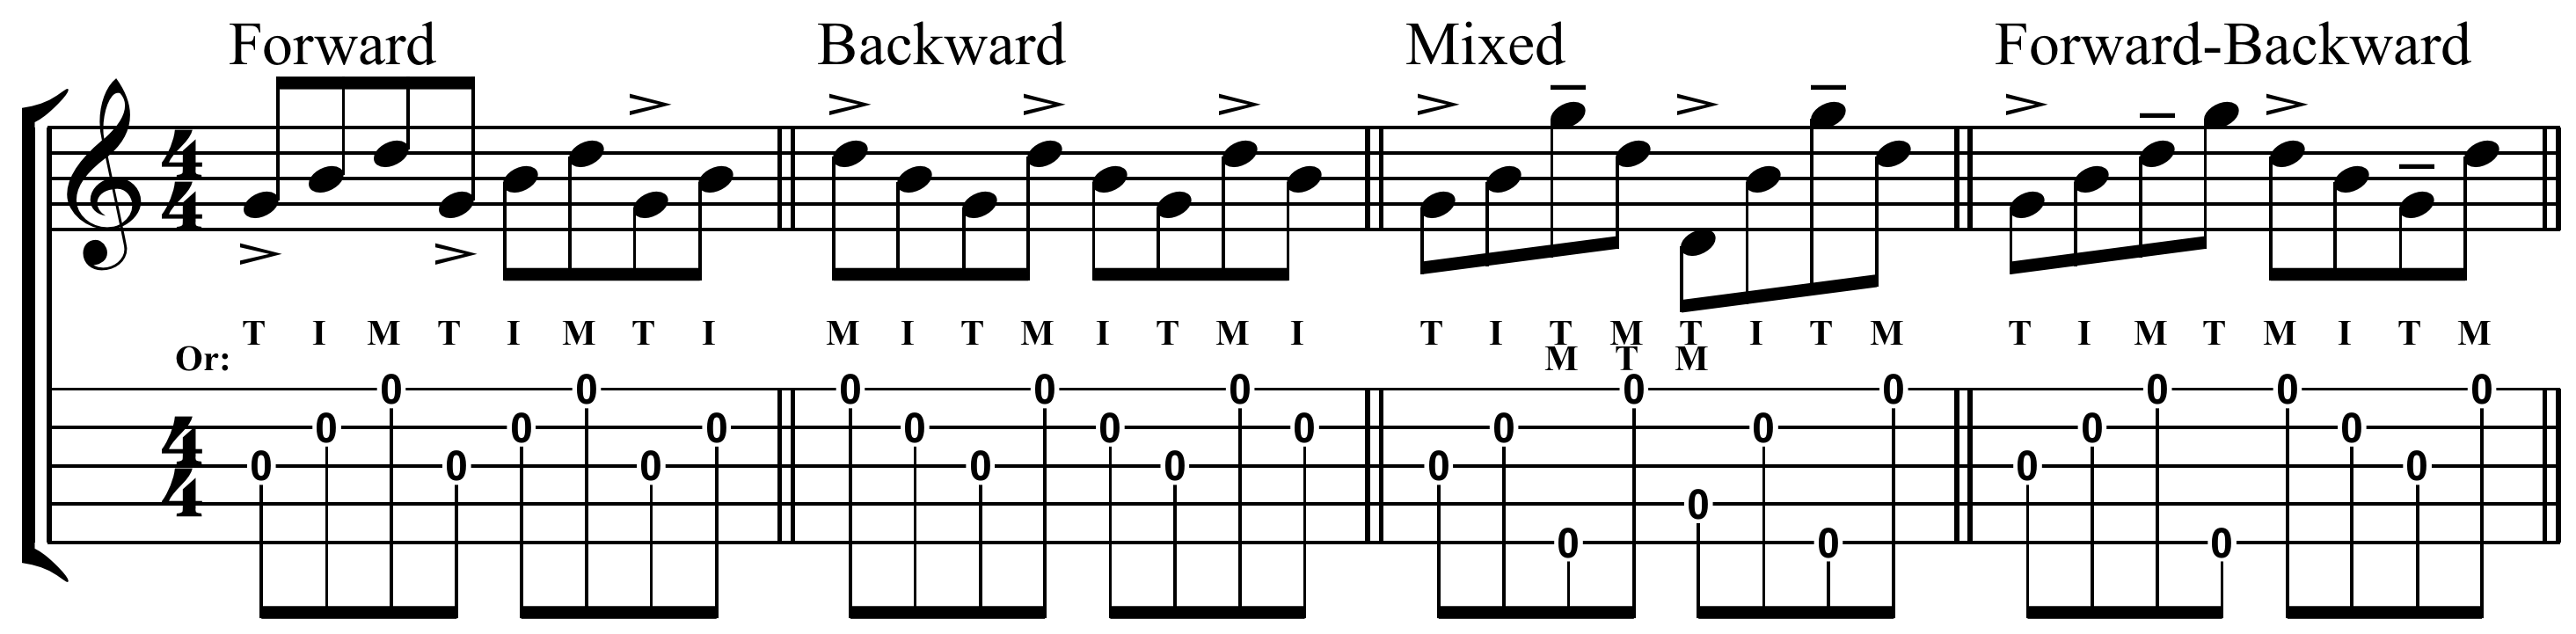 File:Banjo rolls on G major chord.png - Wikimedia Commons